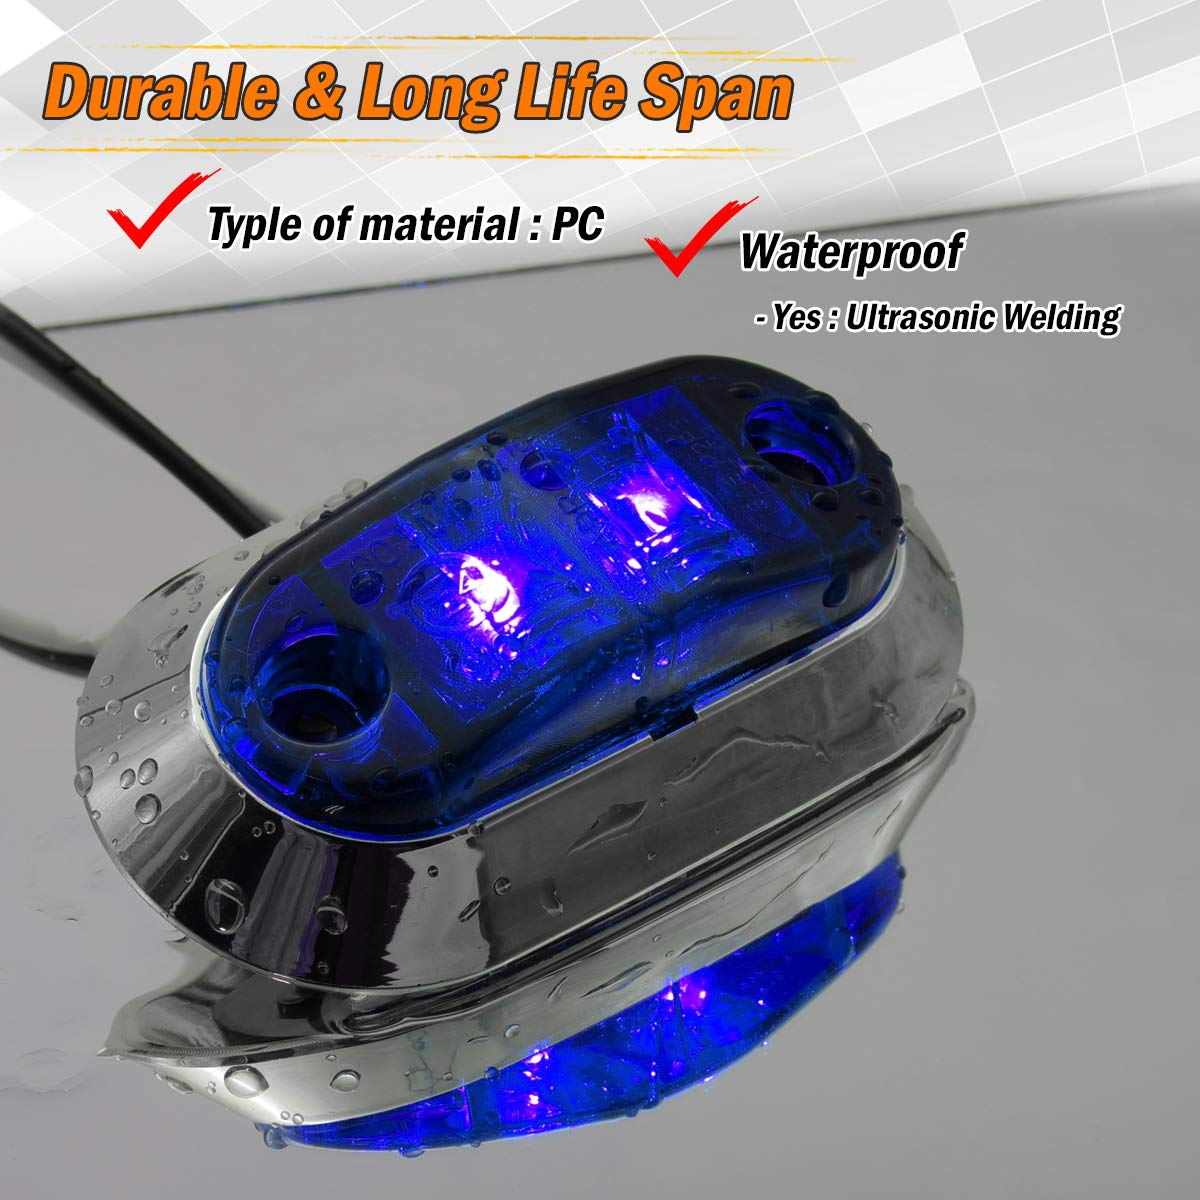 """Meerkatt 2.5/"""" Inch Oval Green LED Surface Mount Clearance Bulb Multi-Voltage w//Chrome Bezel Side Marker Lights Car Trailer Bus Lorry Truck SUV Tow Camper Jeep 10-30V DC Waterproof LM-CHS Pack of 2"""